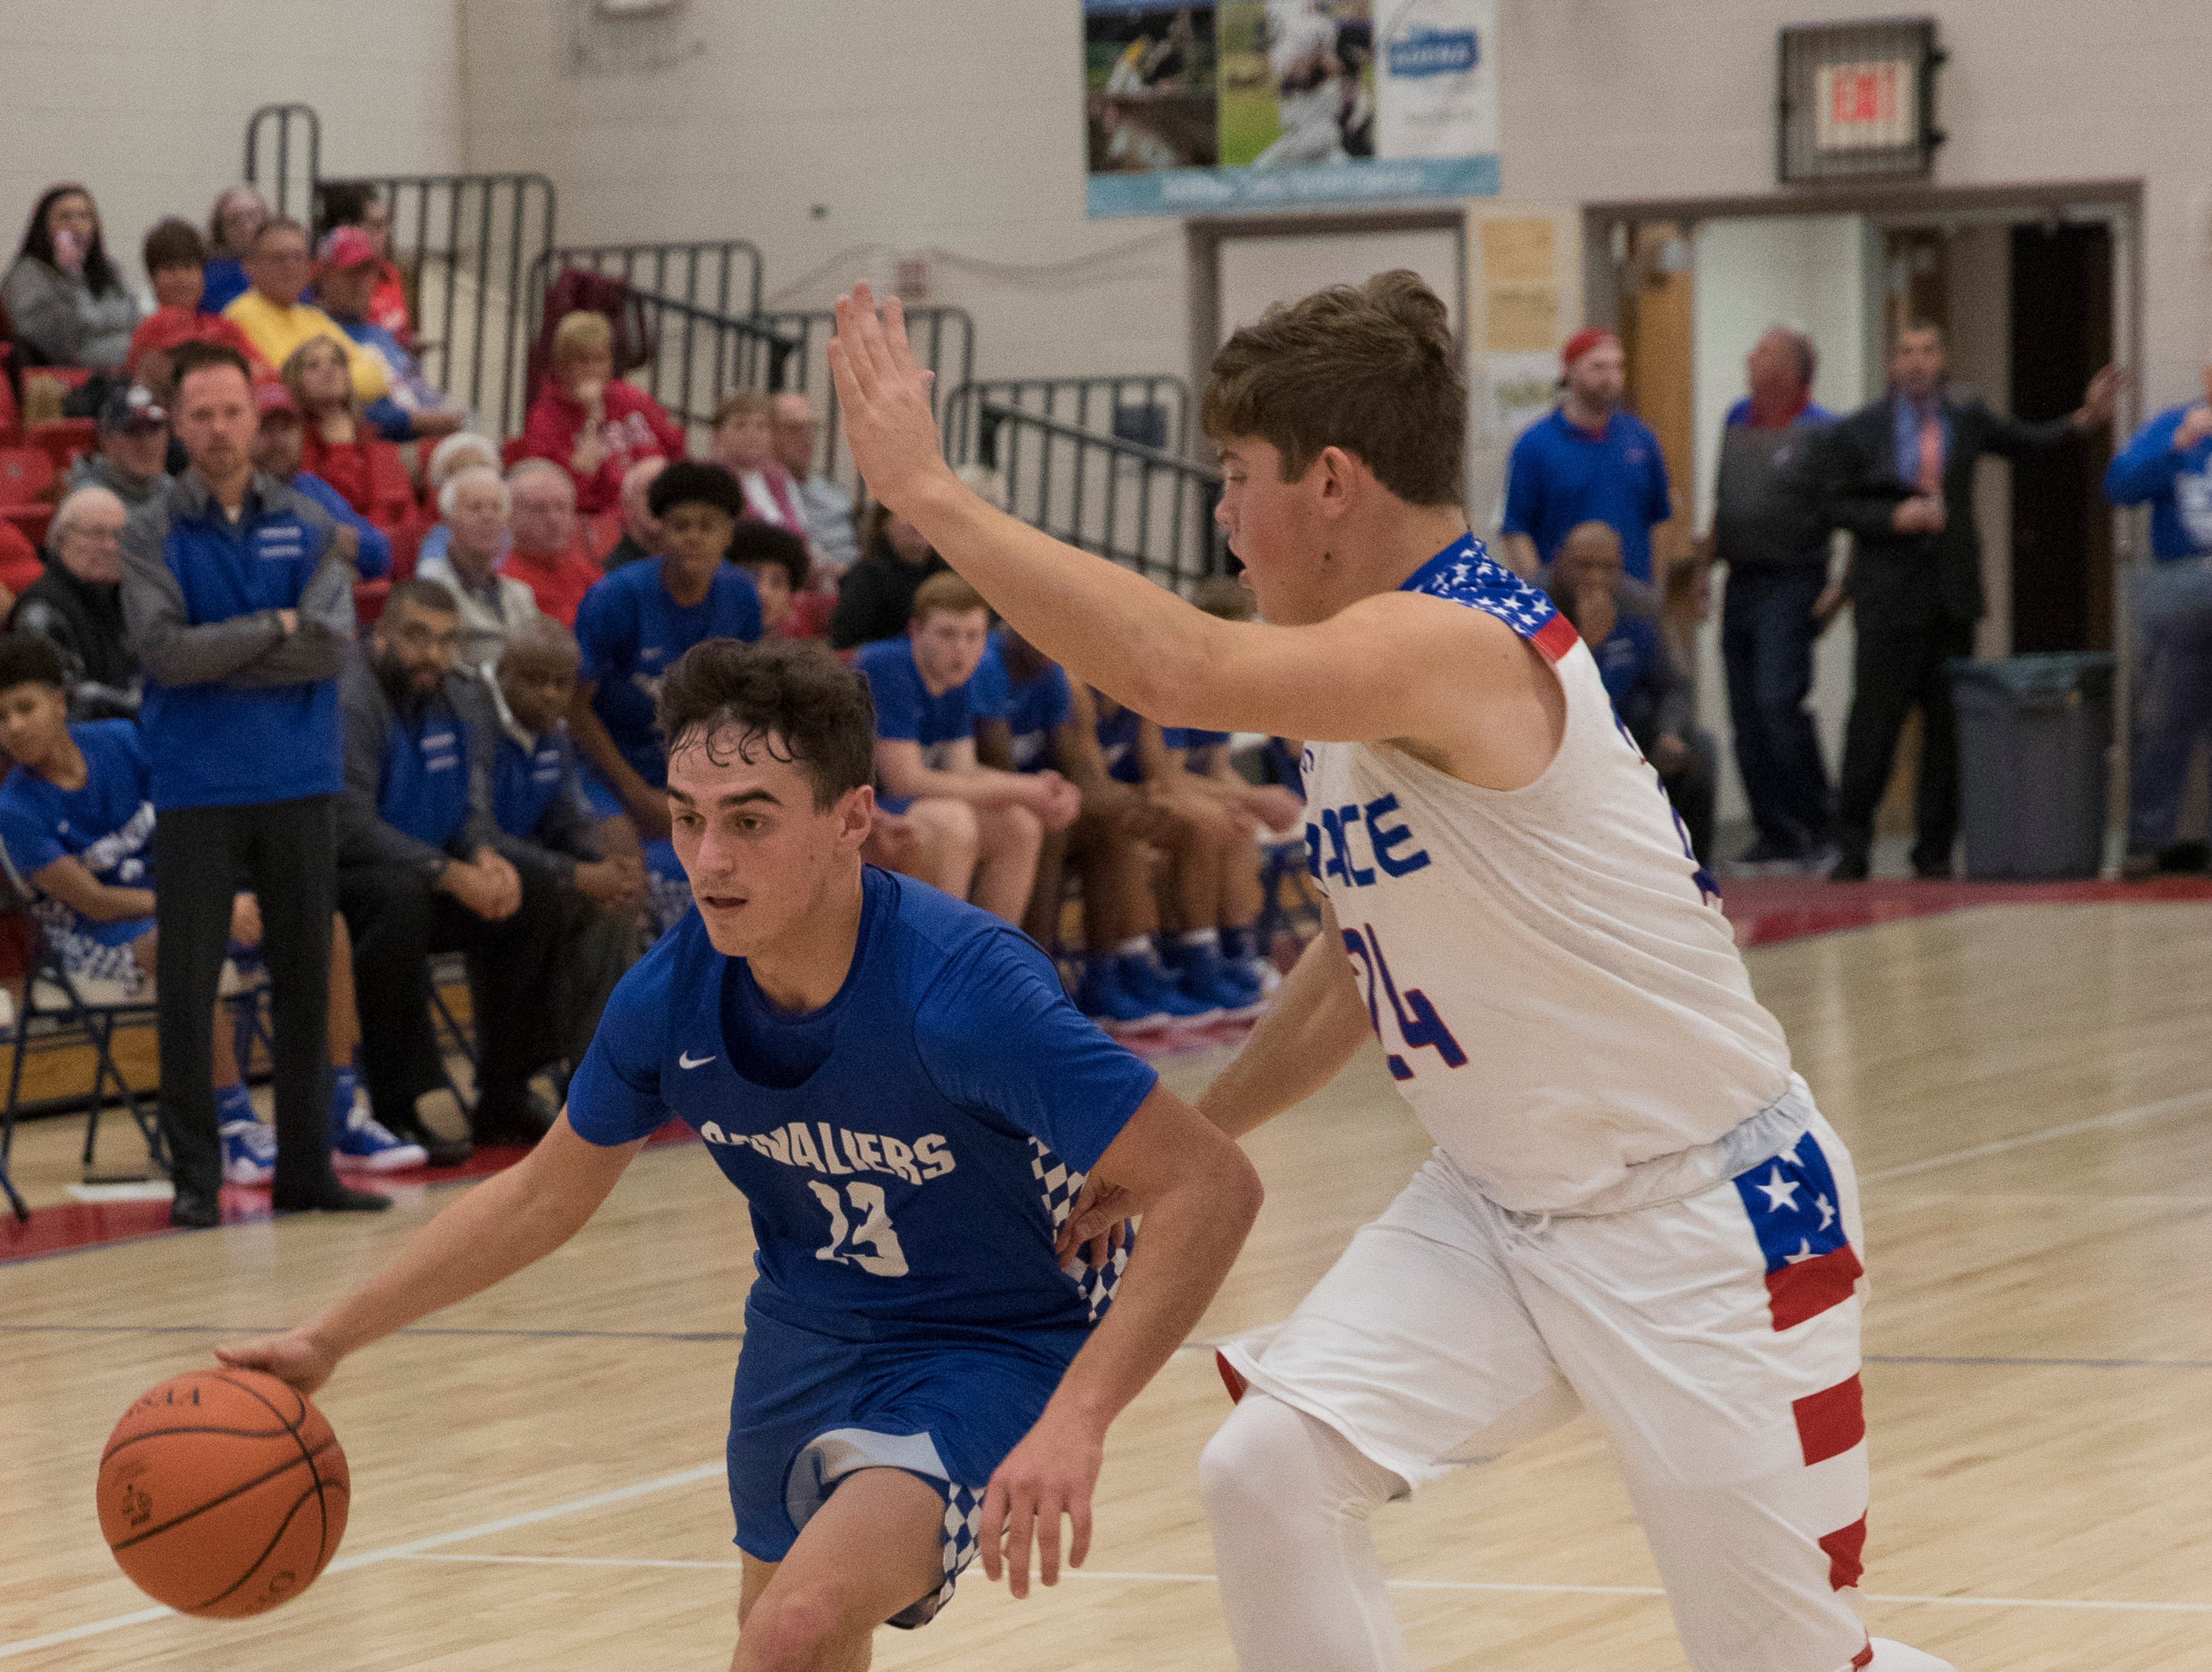 Chris Postage looks for an opening to pass during Chillicothe's game against Zane Trace Tuesday night at Zane Trace High School. The Pioneers defeated the Cavaliers 45-33.